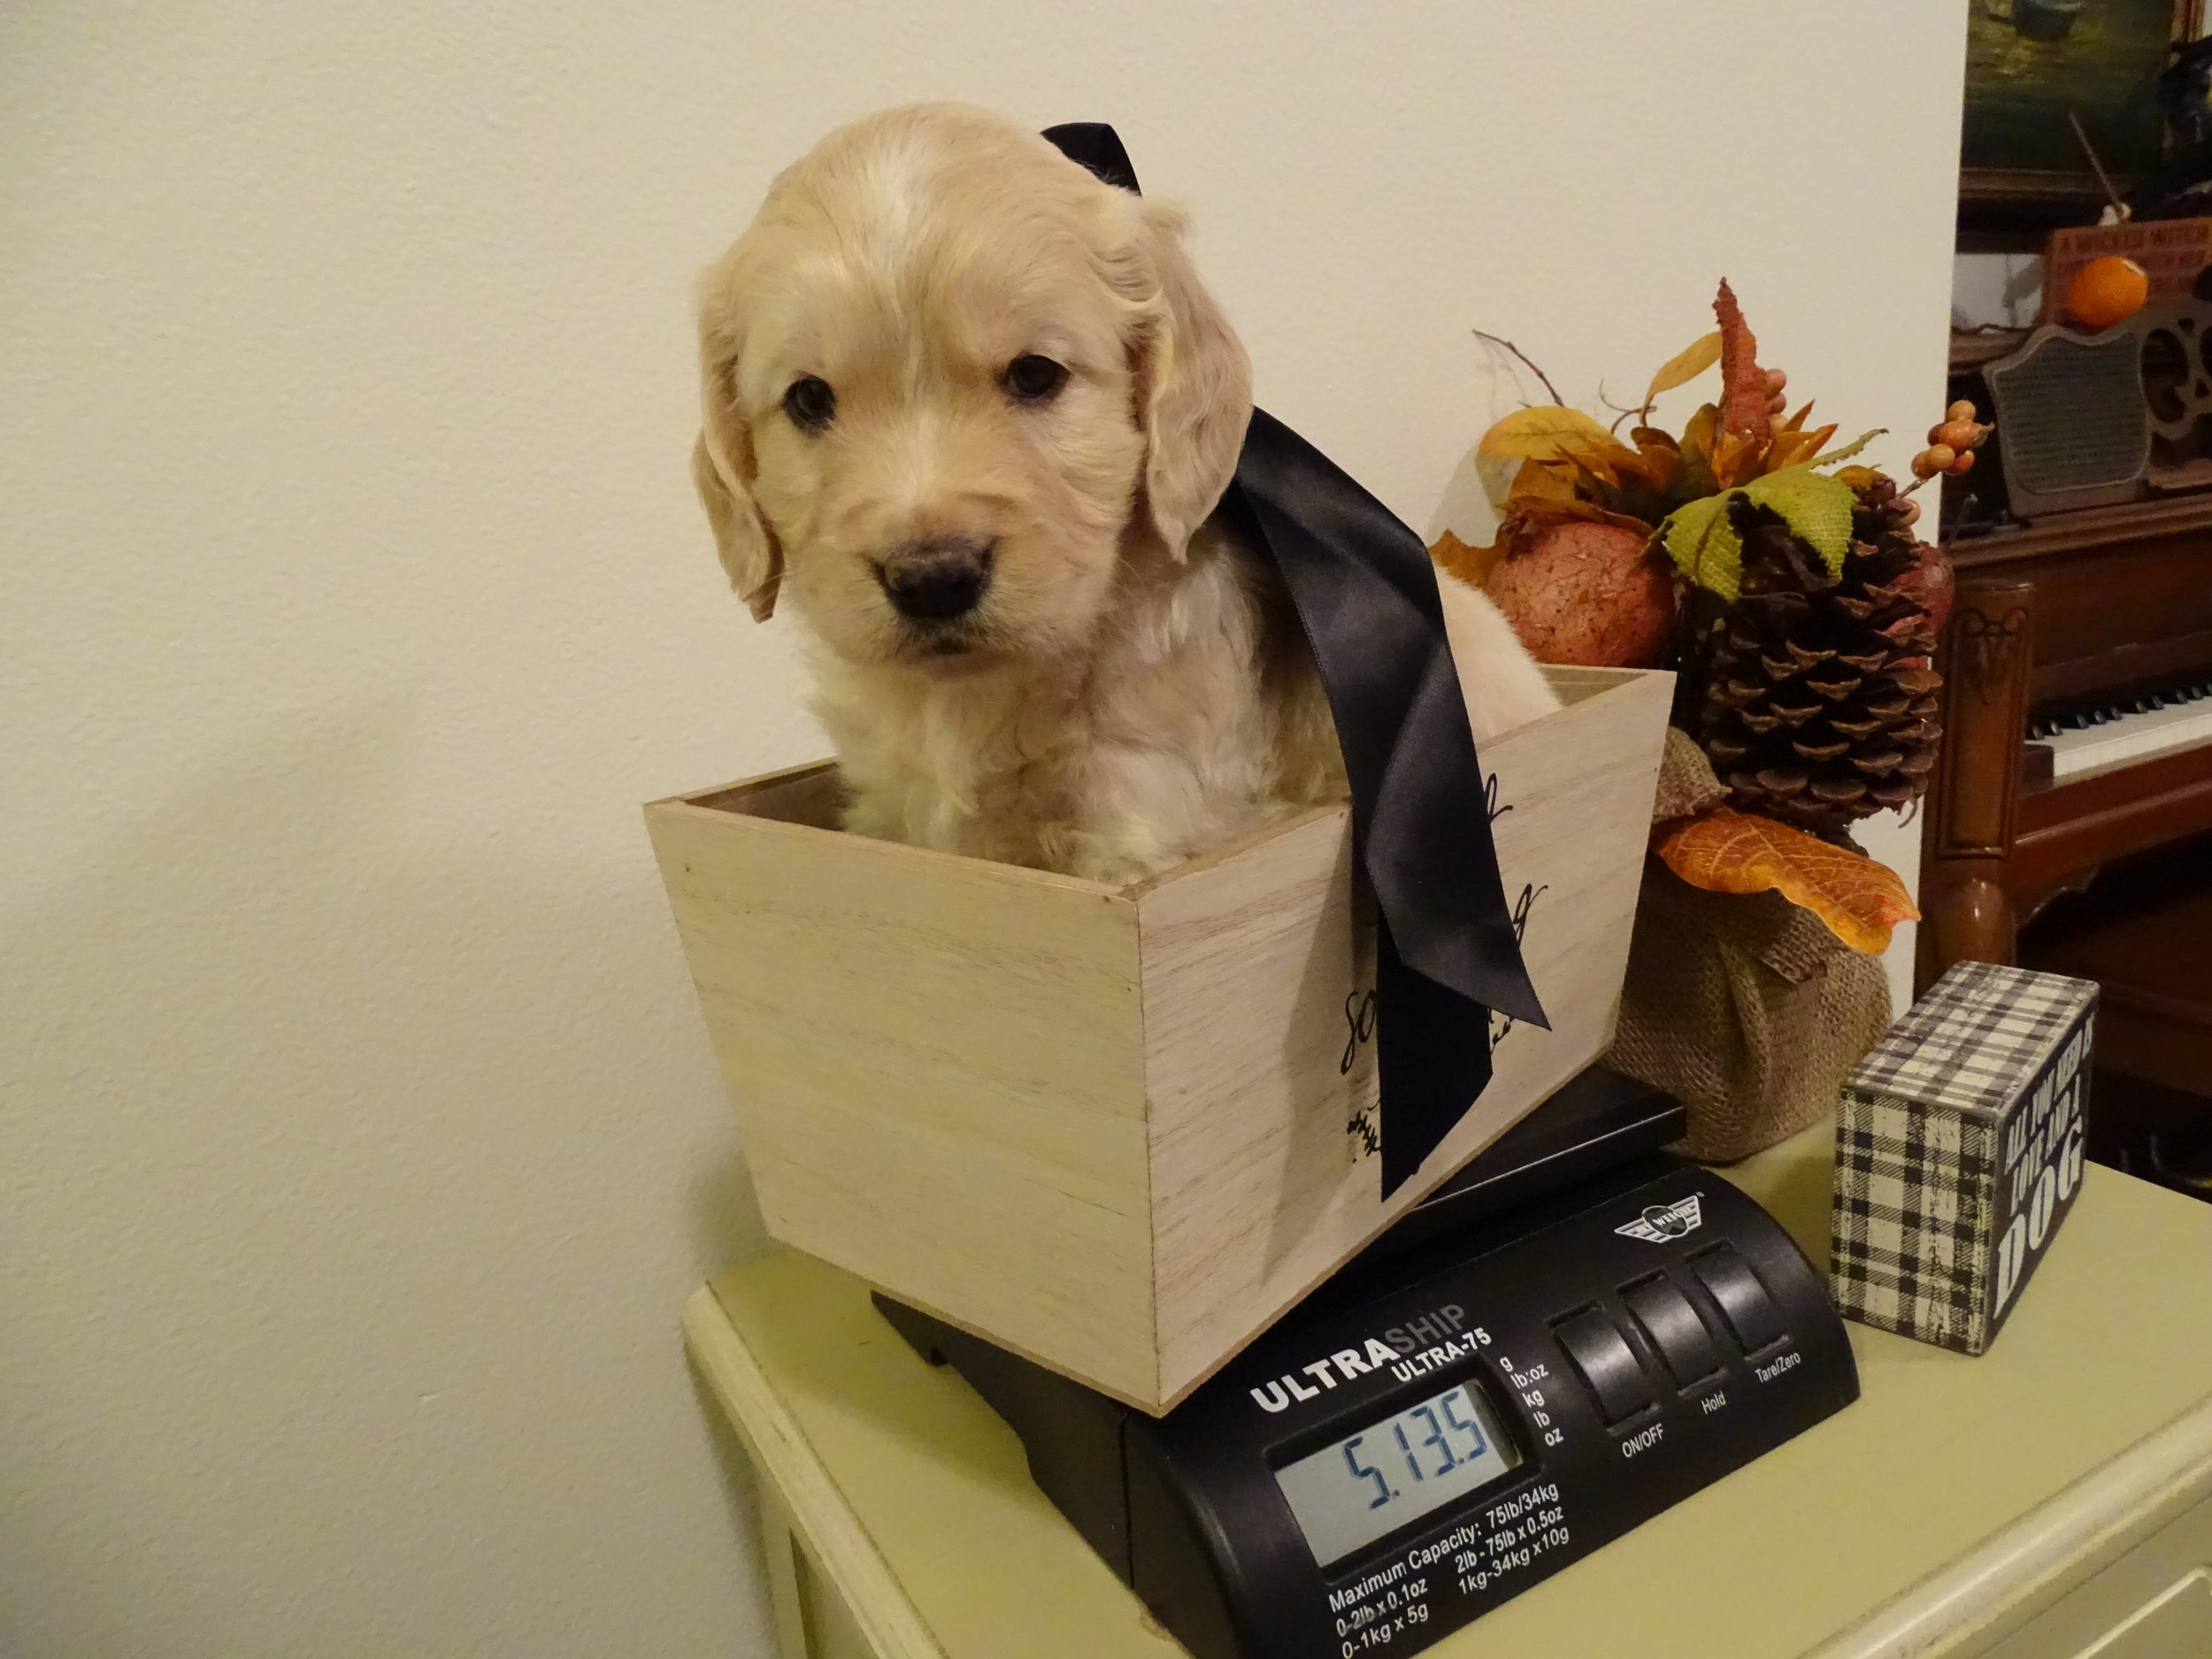 Boomer (Willoughby) 5-weeks-old